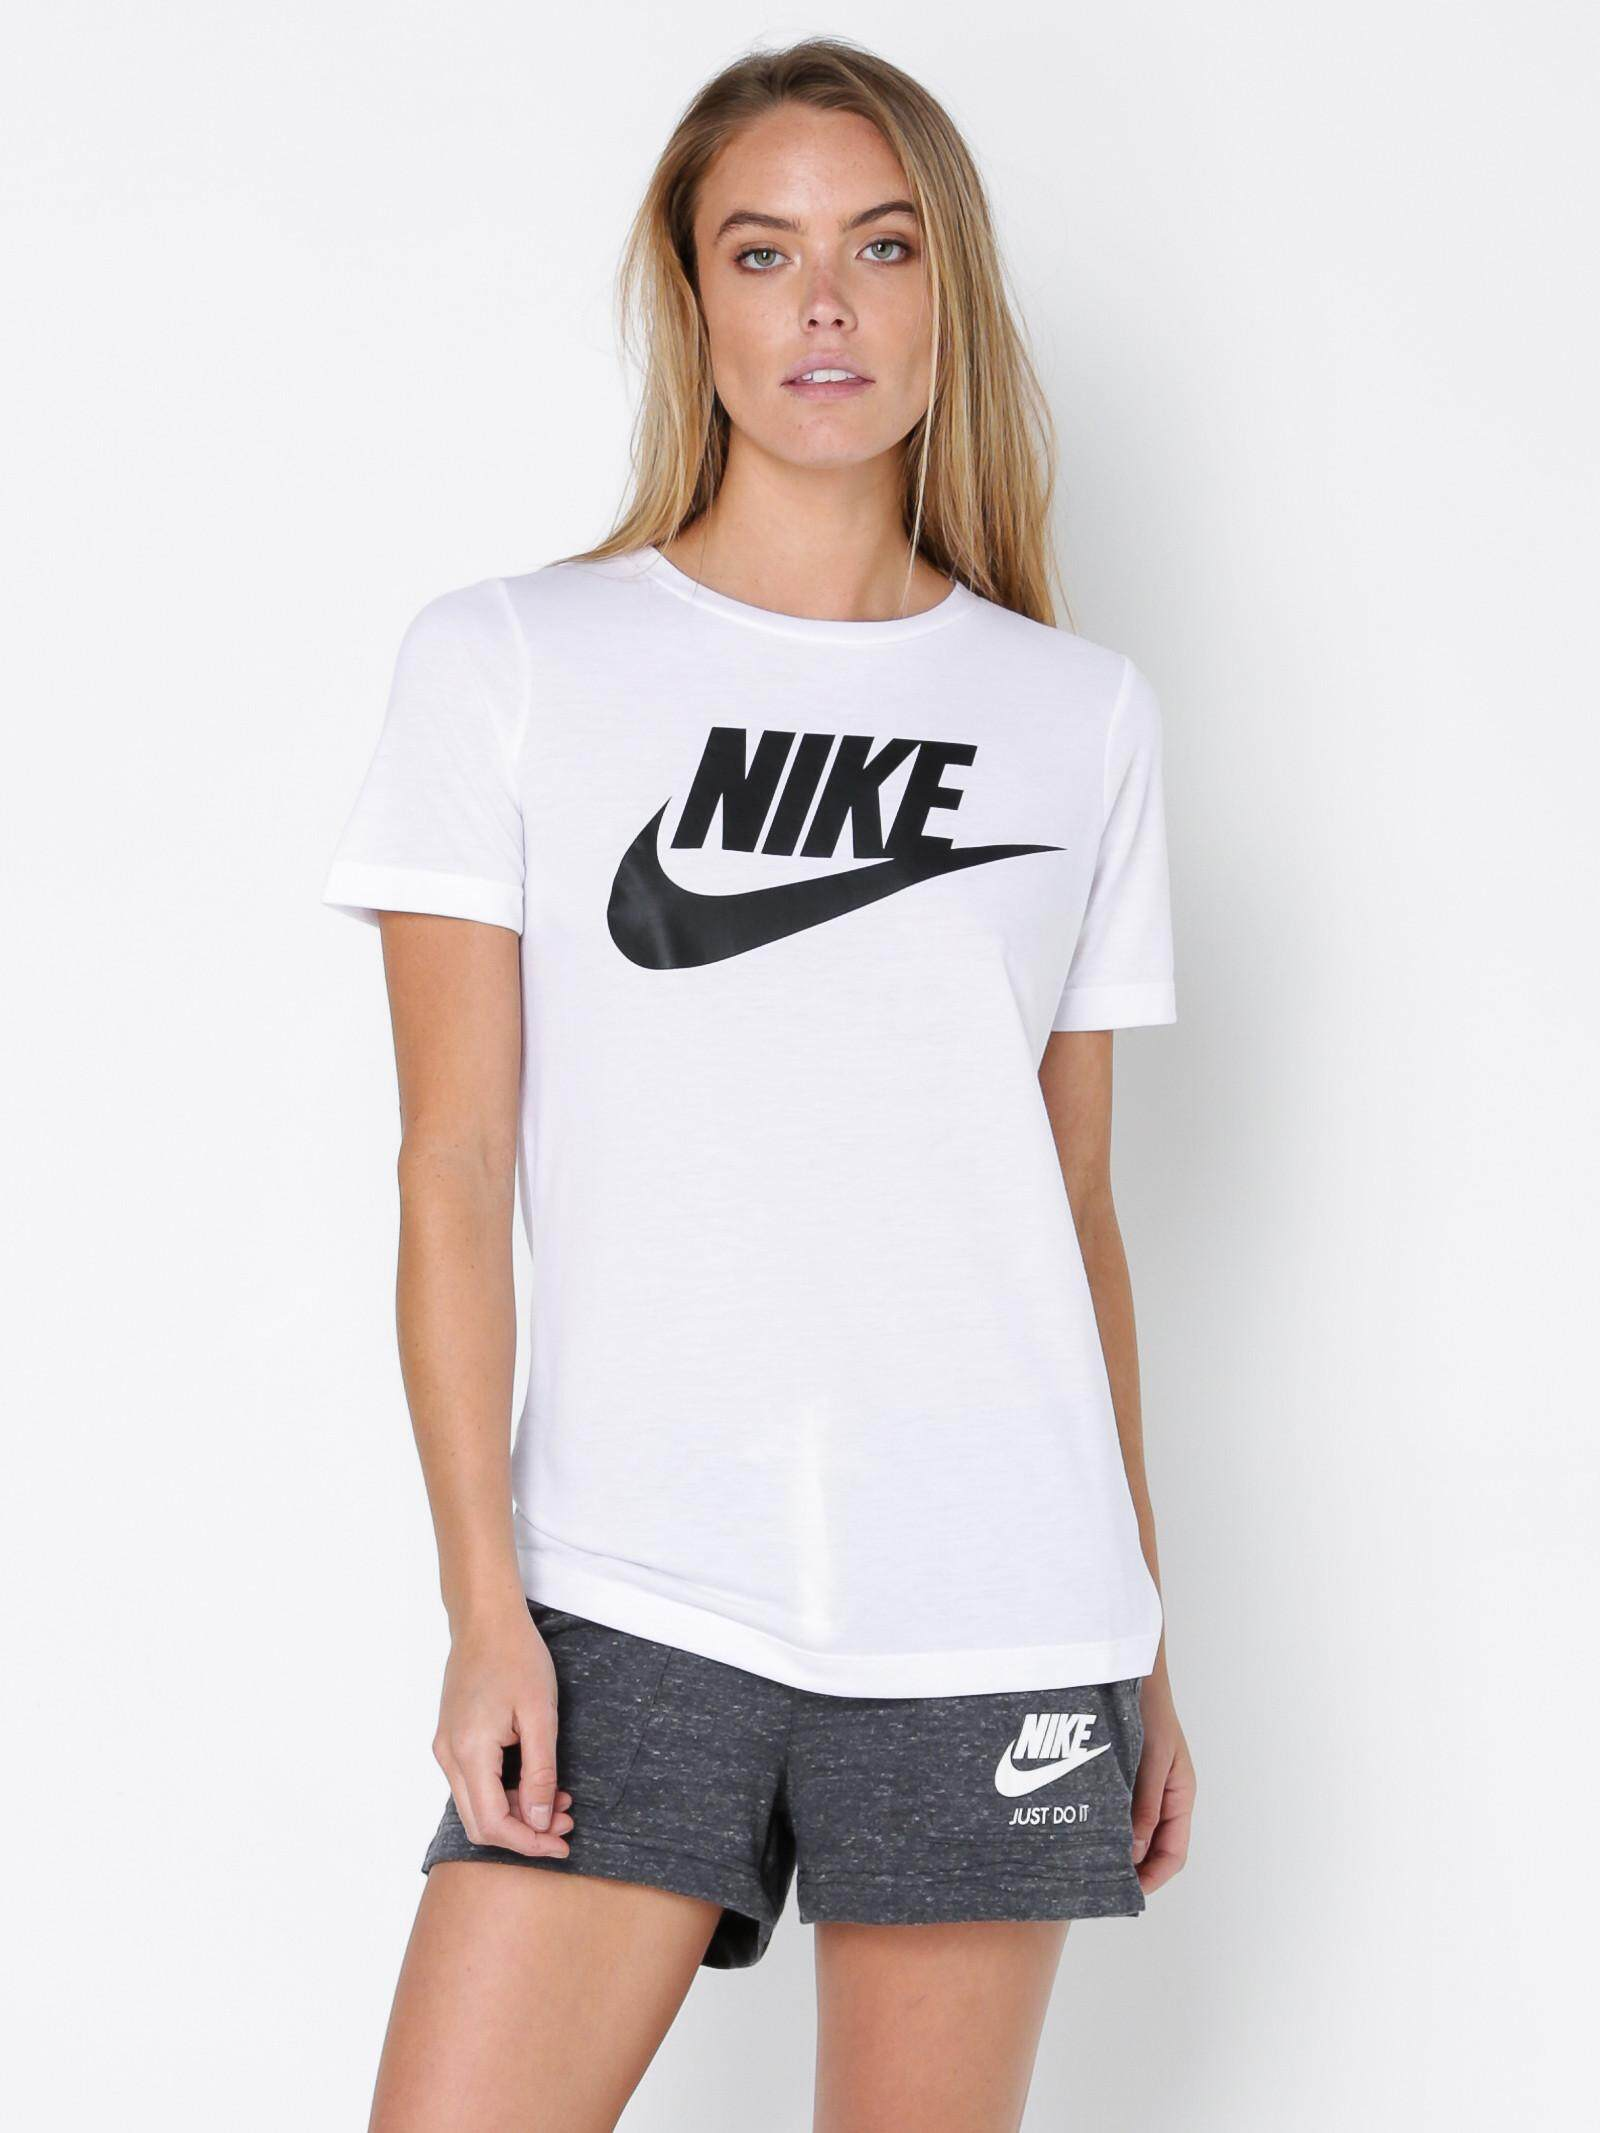 9baf8b73050de6 Nike Womens tshirt 100% Cotton   2018 New Quality Update T-Shirts Fashion